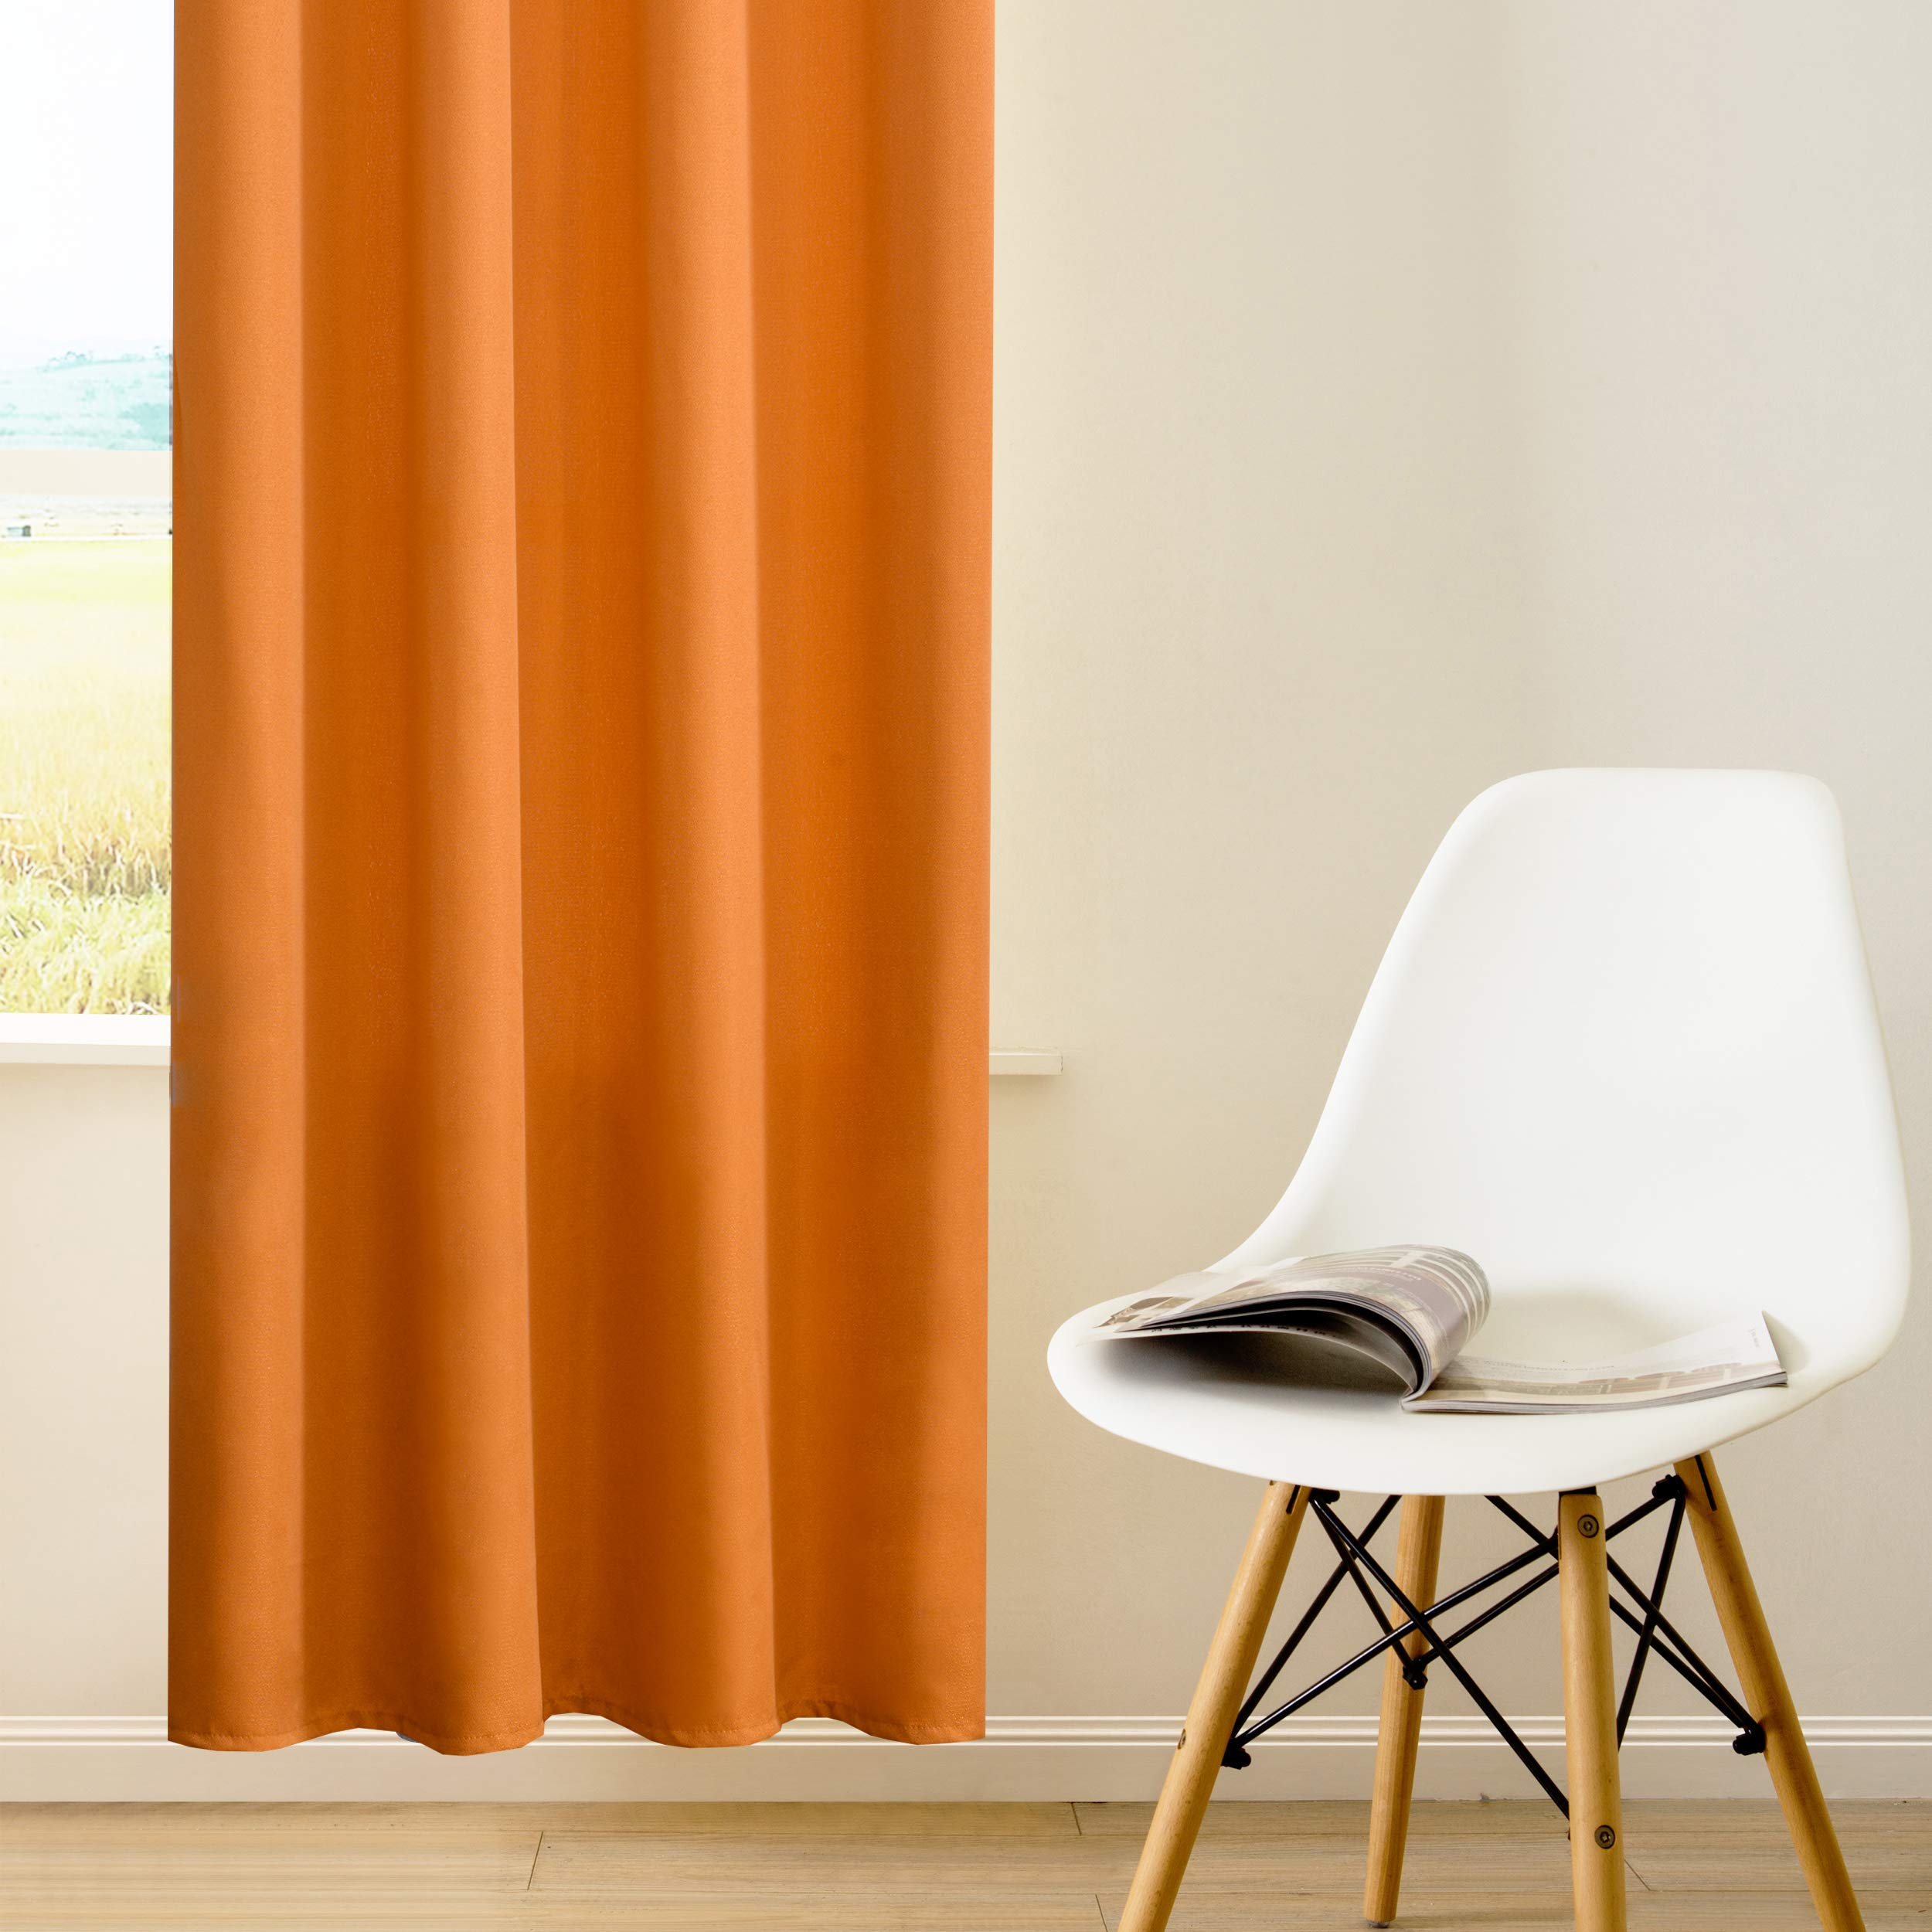 DWCN Semi Sheer Curtains Sunlight Filtering Country Modern Style Draperies 8 Grommets Window Orange Curtain 52x63 inch Long Set of 2 Faux Linen Panels for Living Room by DWCN (Image #4)